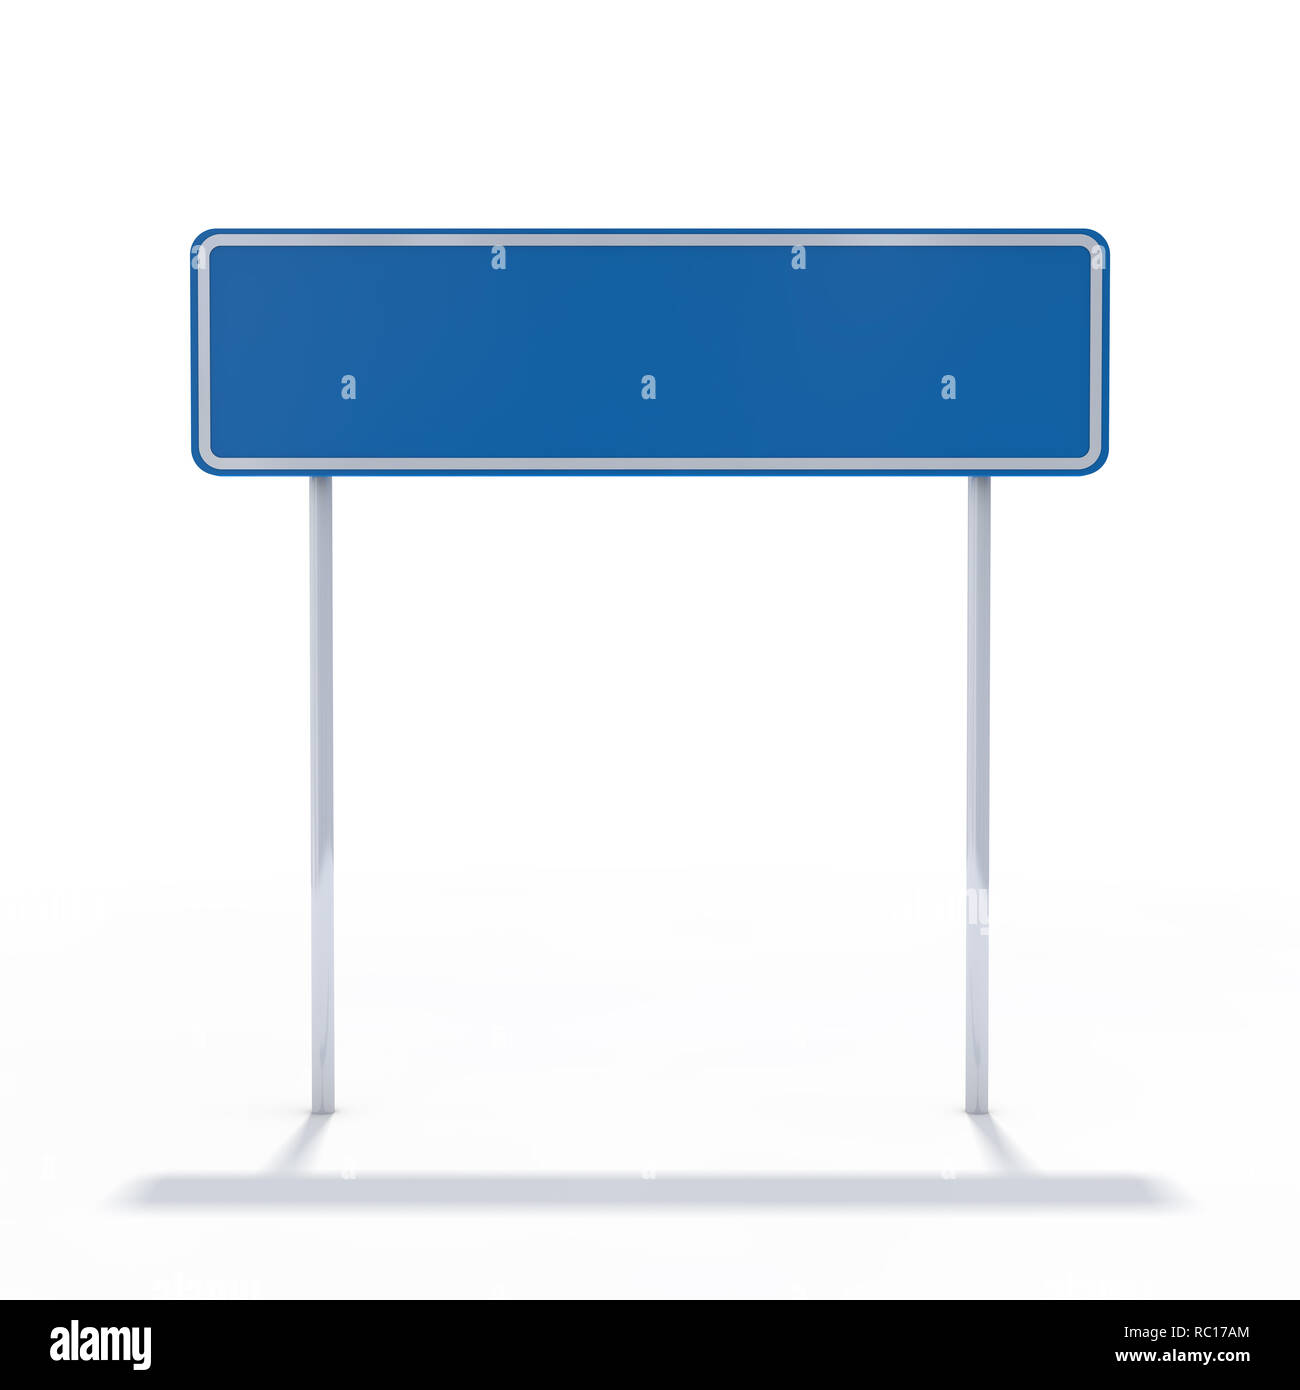 Blank blue road sign or Empty traffic signs. 3D rendering - Stock Image